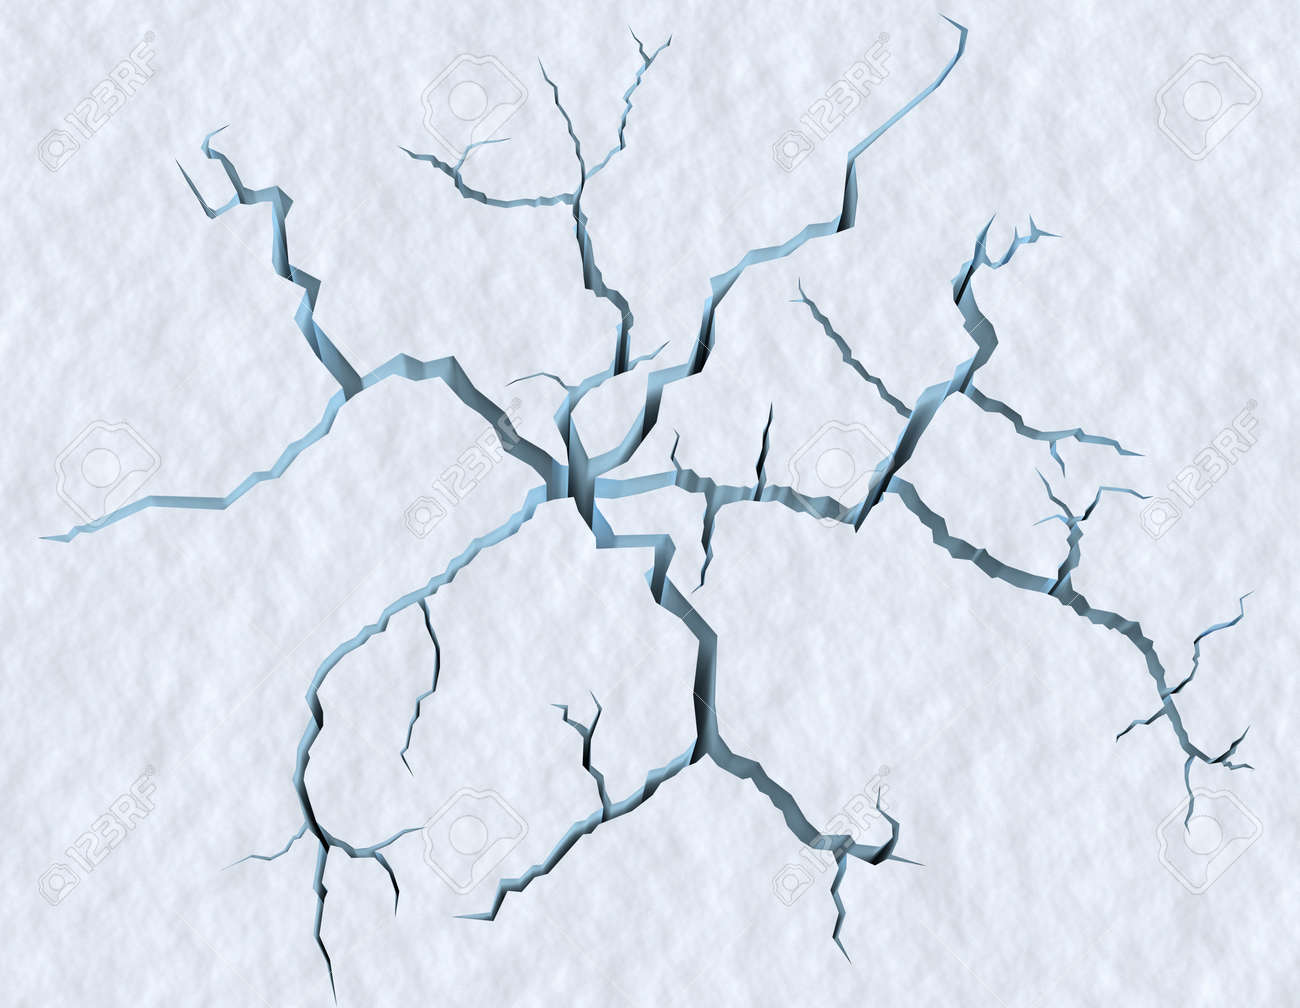 Danger on the show surface concept abstract illustration: cracks in blue ice of cracked glacier in textured white snow surface under sunlight, closeup view, winter 3d illustration - 46050592